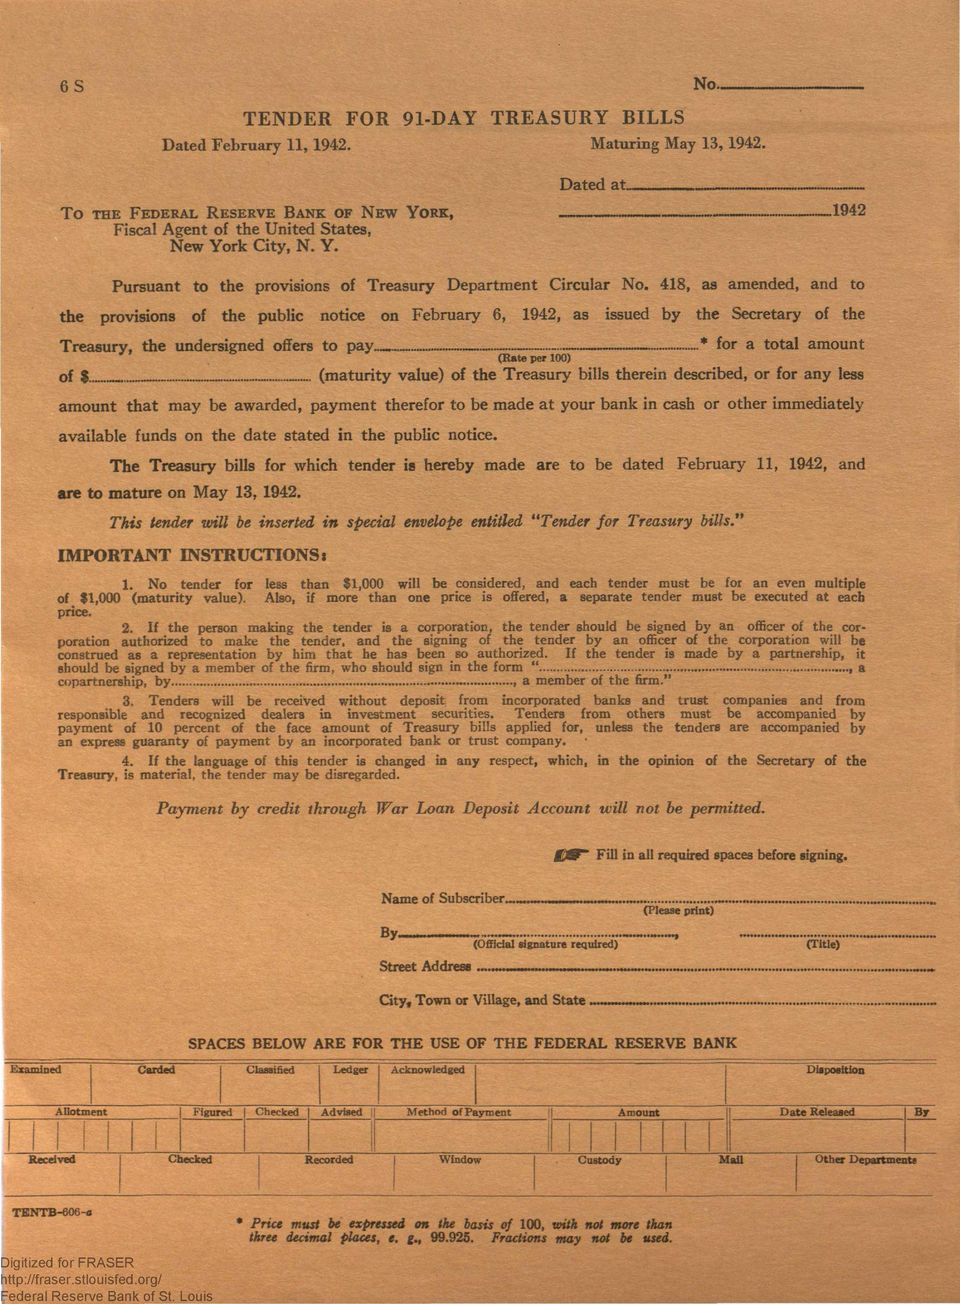 418, as amended, and to the provisions of the public notice on February 6, 1942, as issued by the Secretary of the Treasury, the undersigned offers to pay of $ ~ * for a total amount (Rate per 100).